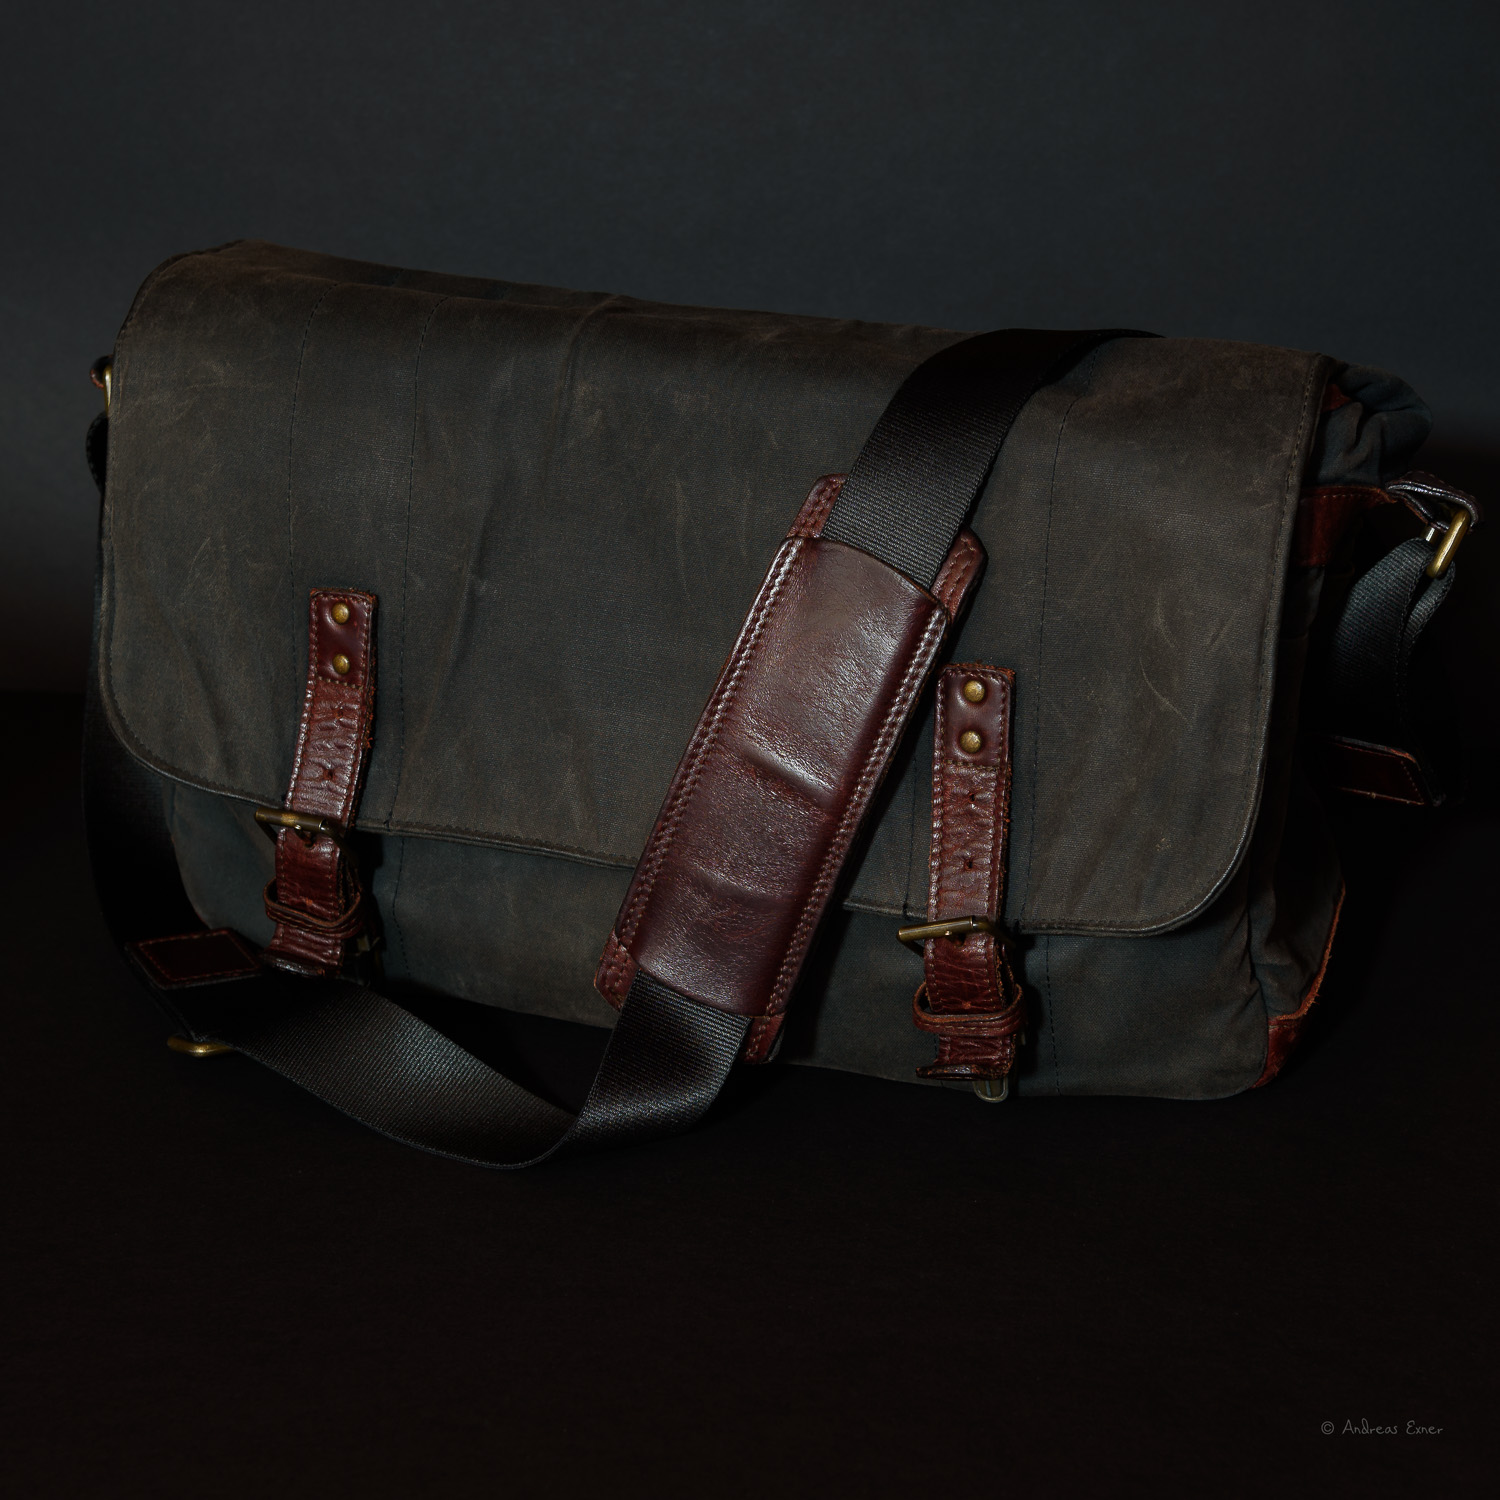 """ONA messenger-style shoulder bag THE UNION STREET  This cool shoulder bag looks rotten and elegant at the same time. It doesn't necessarily call """"steal me"""" because it is made out of waxed canvas and doesn't look at all like a photo bag full of expensive gear. The design and quality of this photo bag is outstanding. The gear is well protected against bumps, weather, and dirt and is lined on the inside with protective padding. It fits my life style and photography habits perfectly.  ★ ★ ★ ★ ★"""